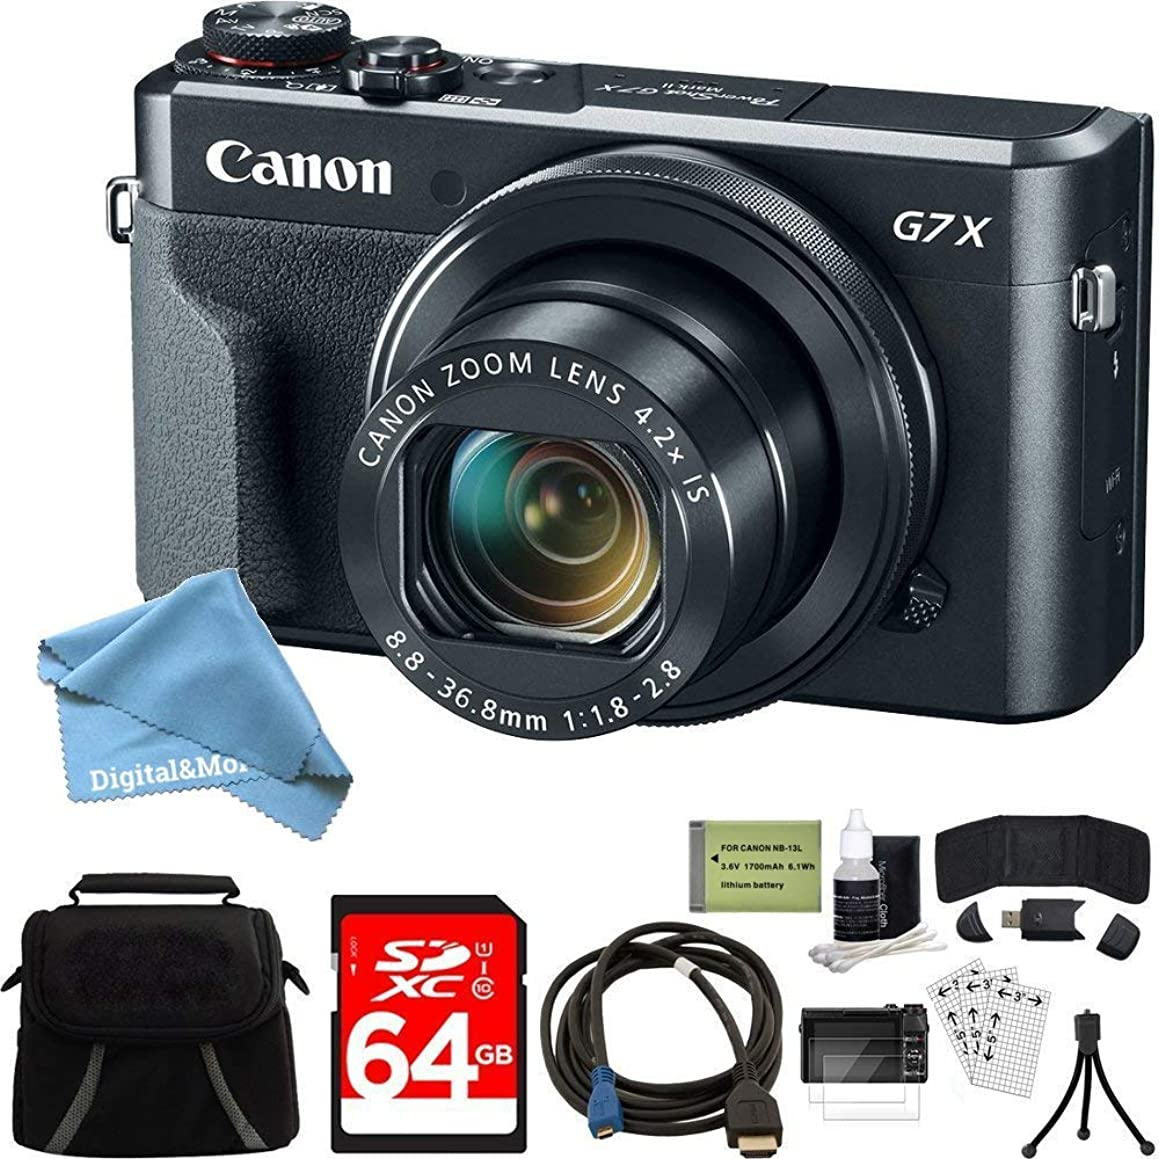 Canon PowerShot G7 X Mark II Zoom Digital Camera w/ 64GB Accessory Bundle Includes Camera, Bag, 64GB SDXC Memory Card, HDMI Cable, Card Wallet + Reader, DigitalAndMore Cleaning Kit